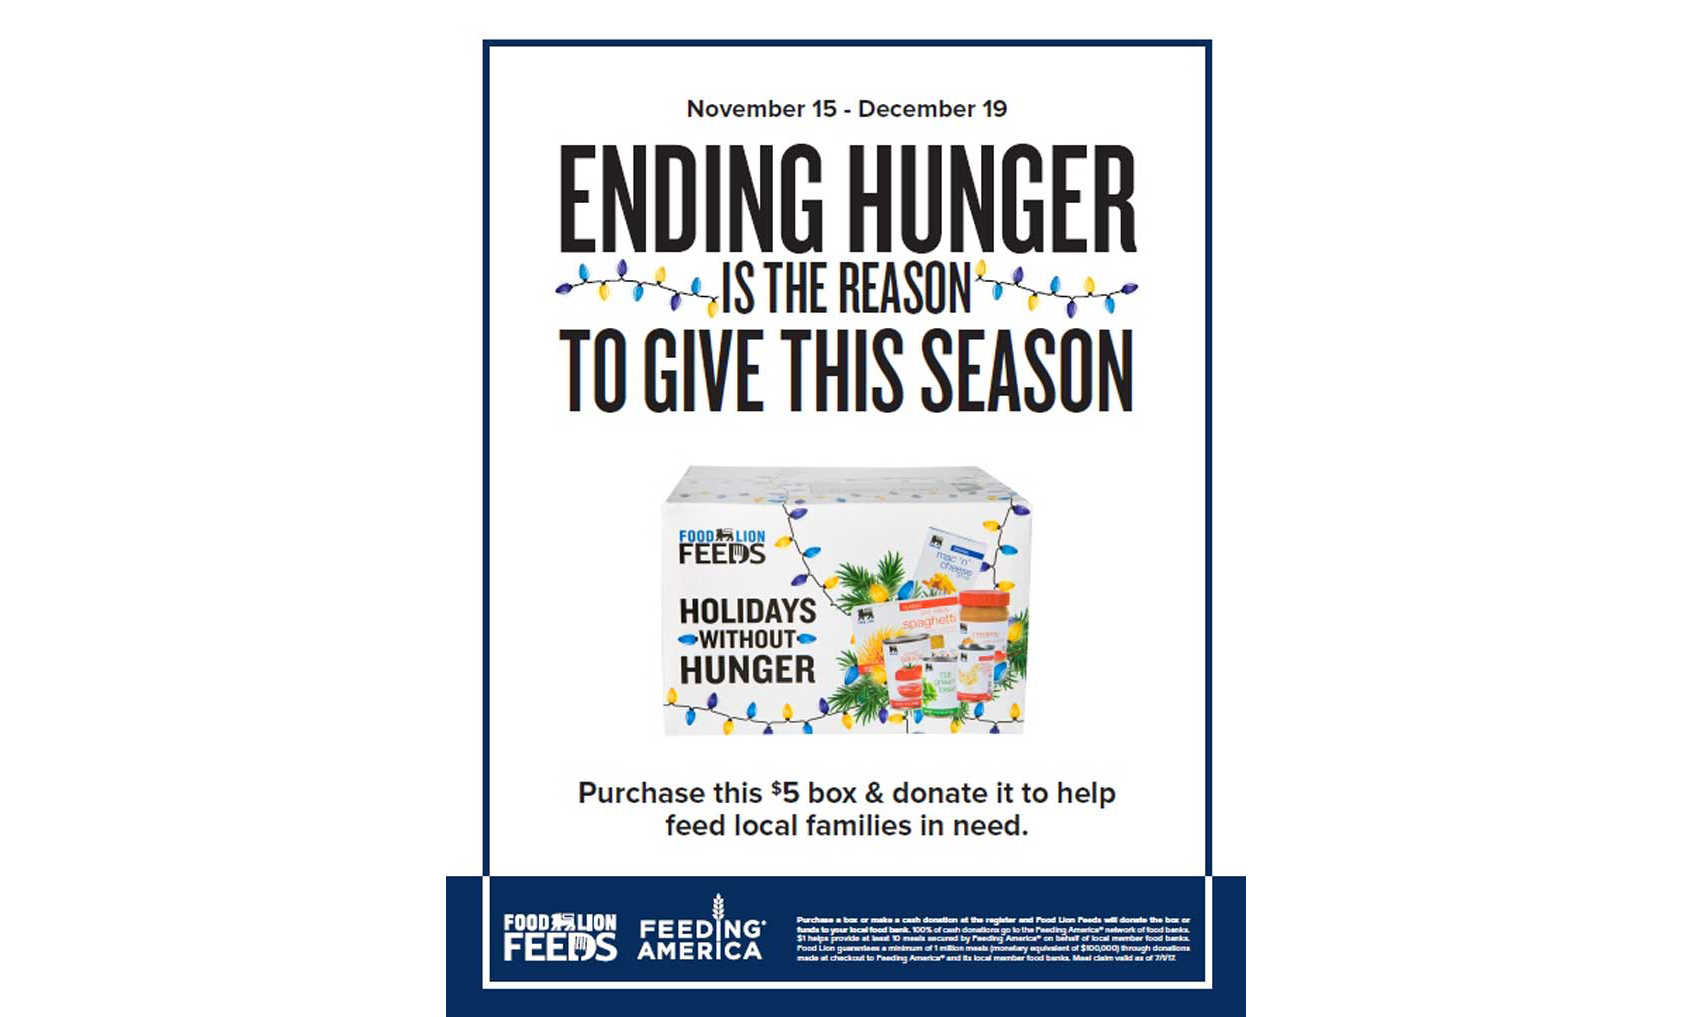 Food Lion Feeds holiday hunger campaign flyer